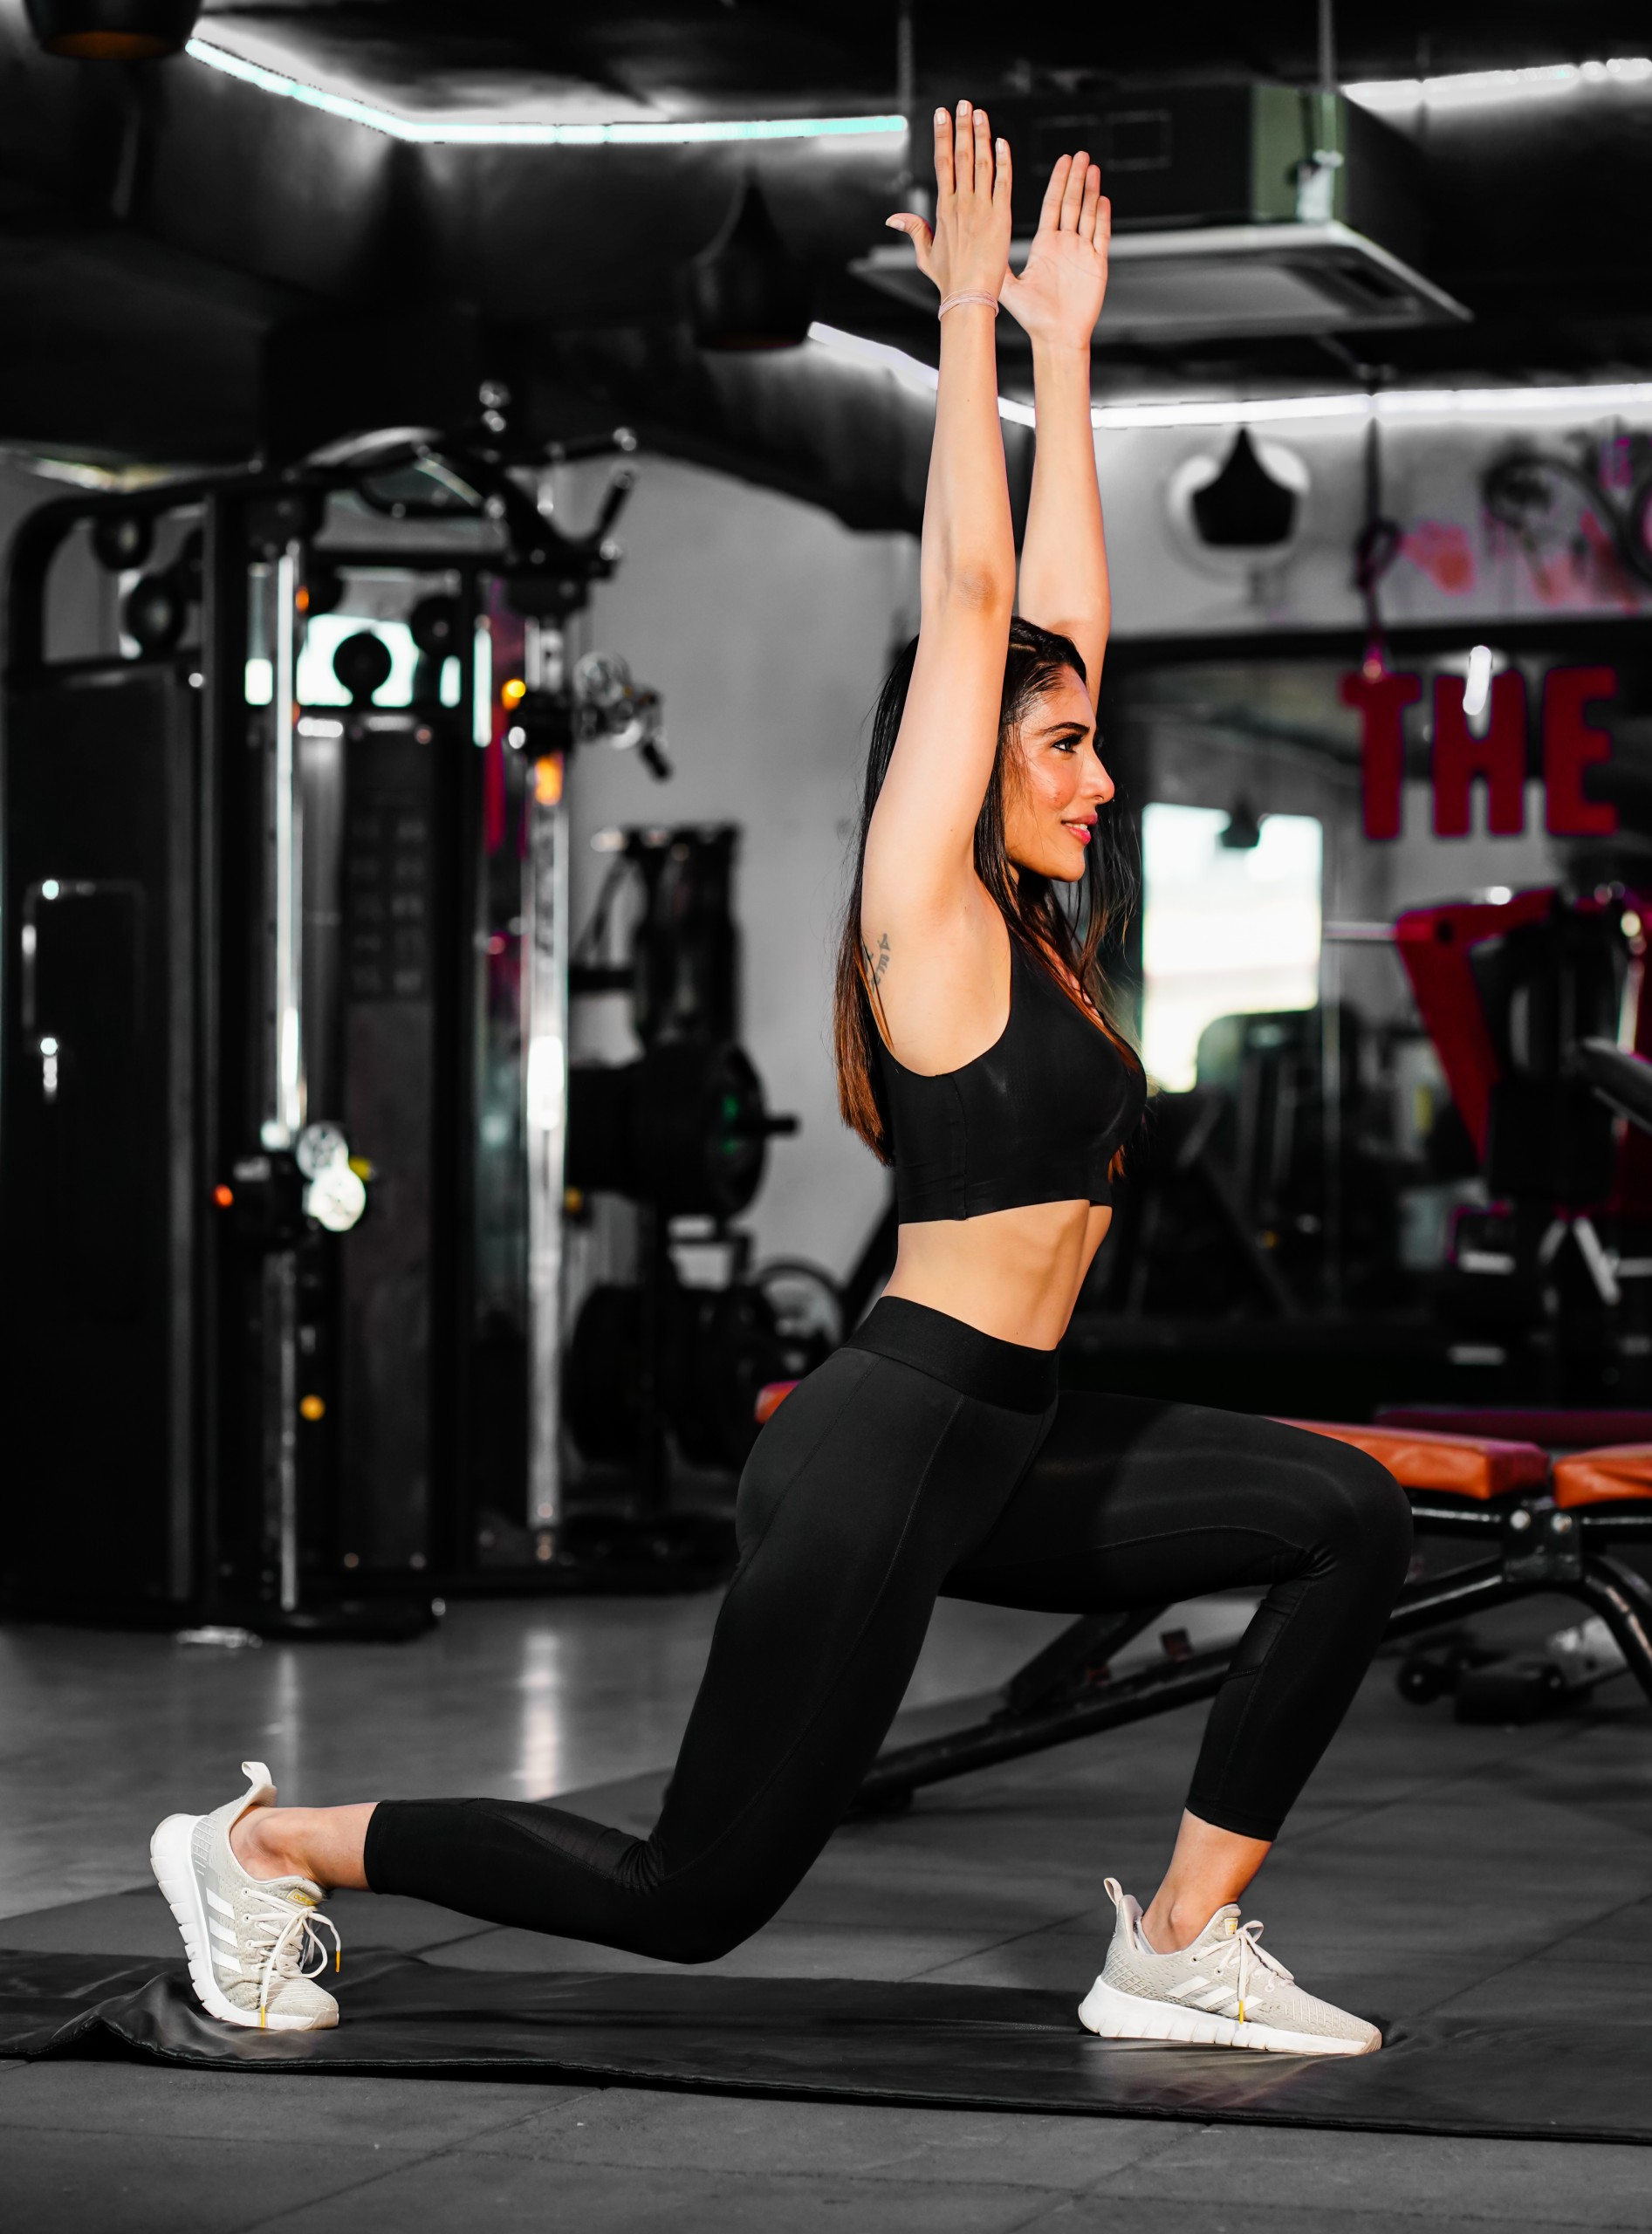 Fit Woman yoga in the Gym